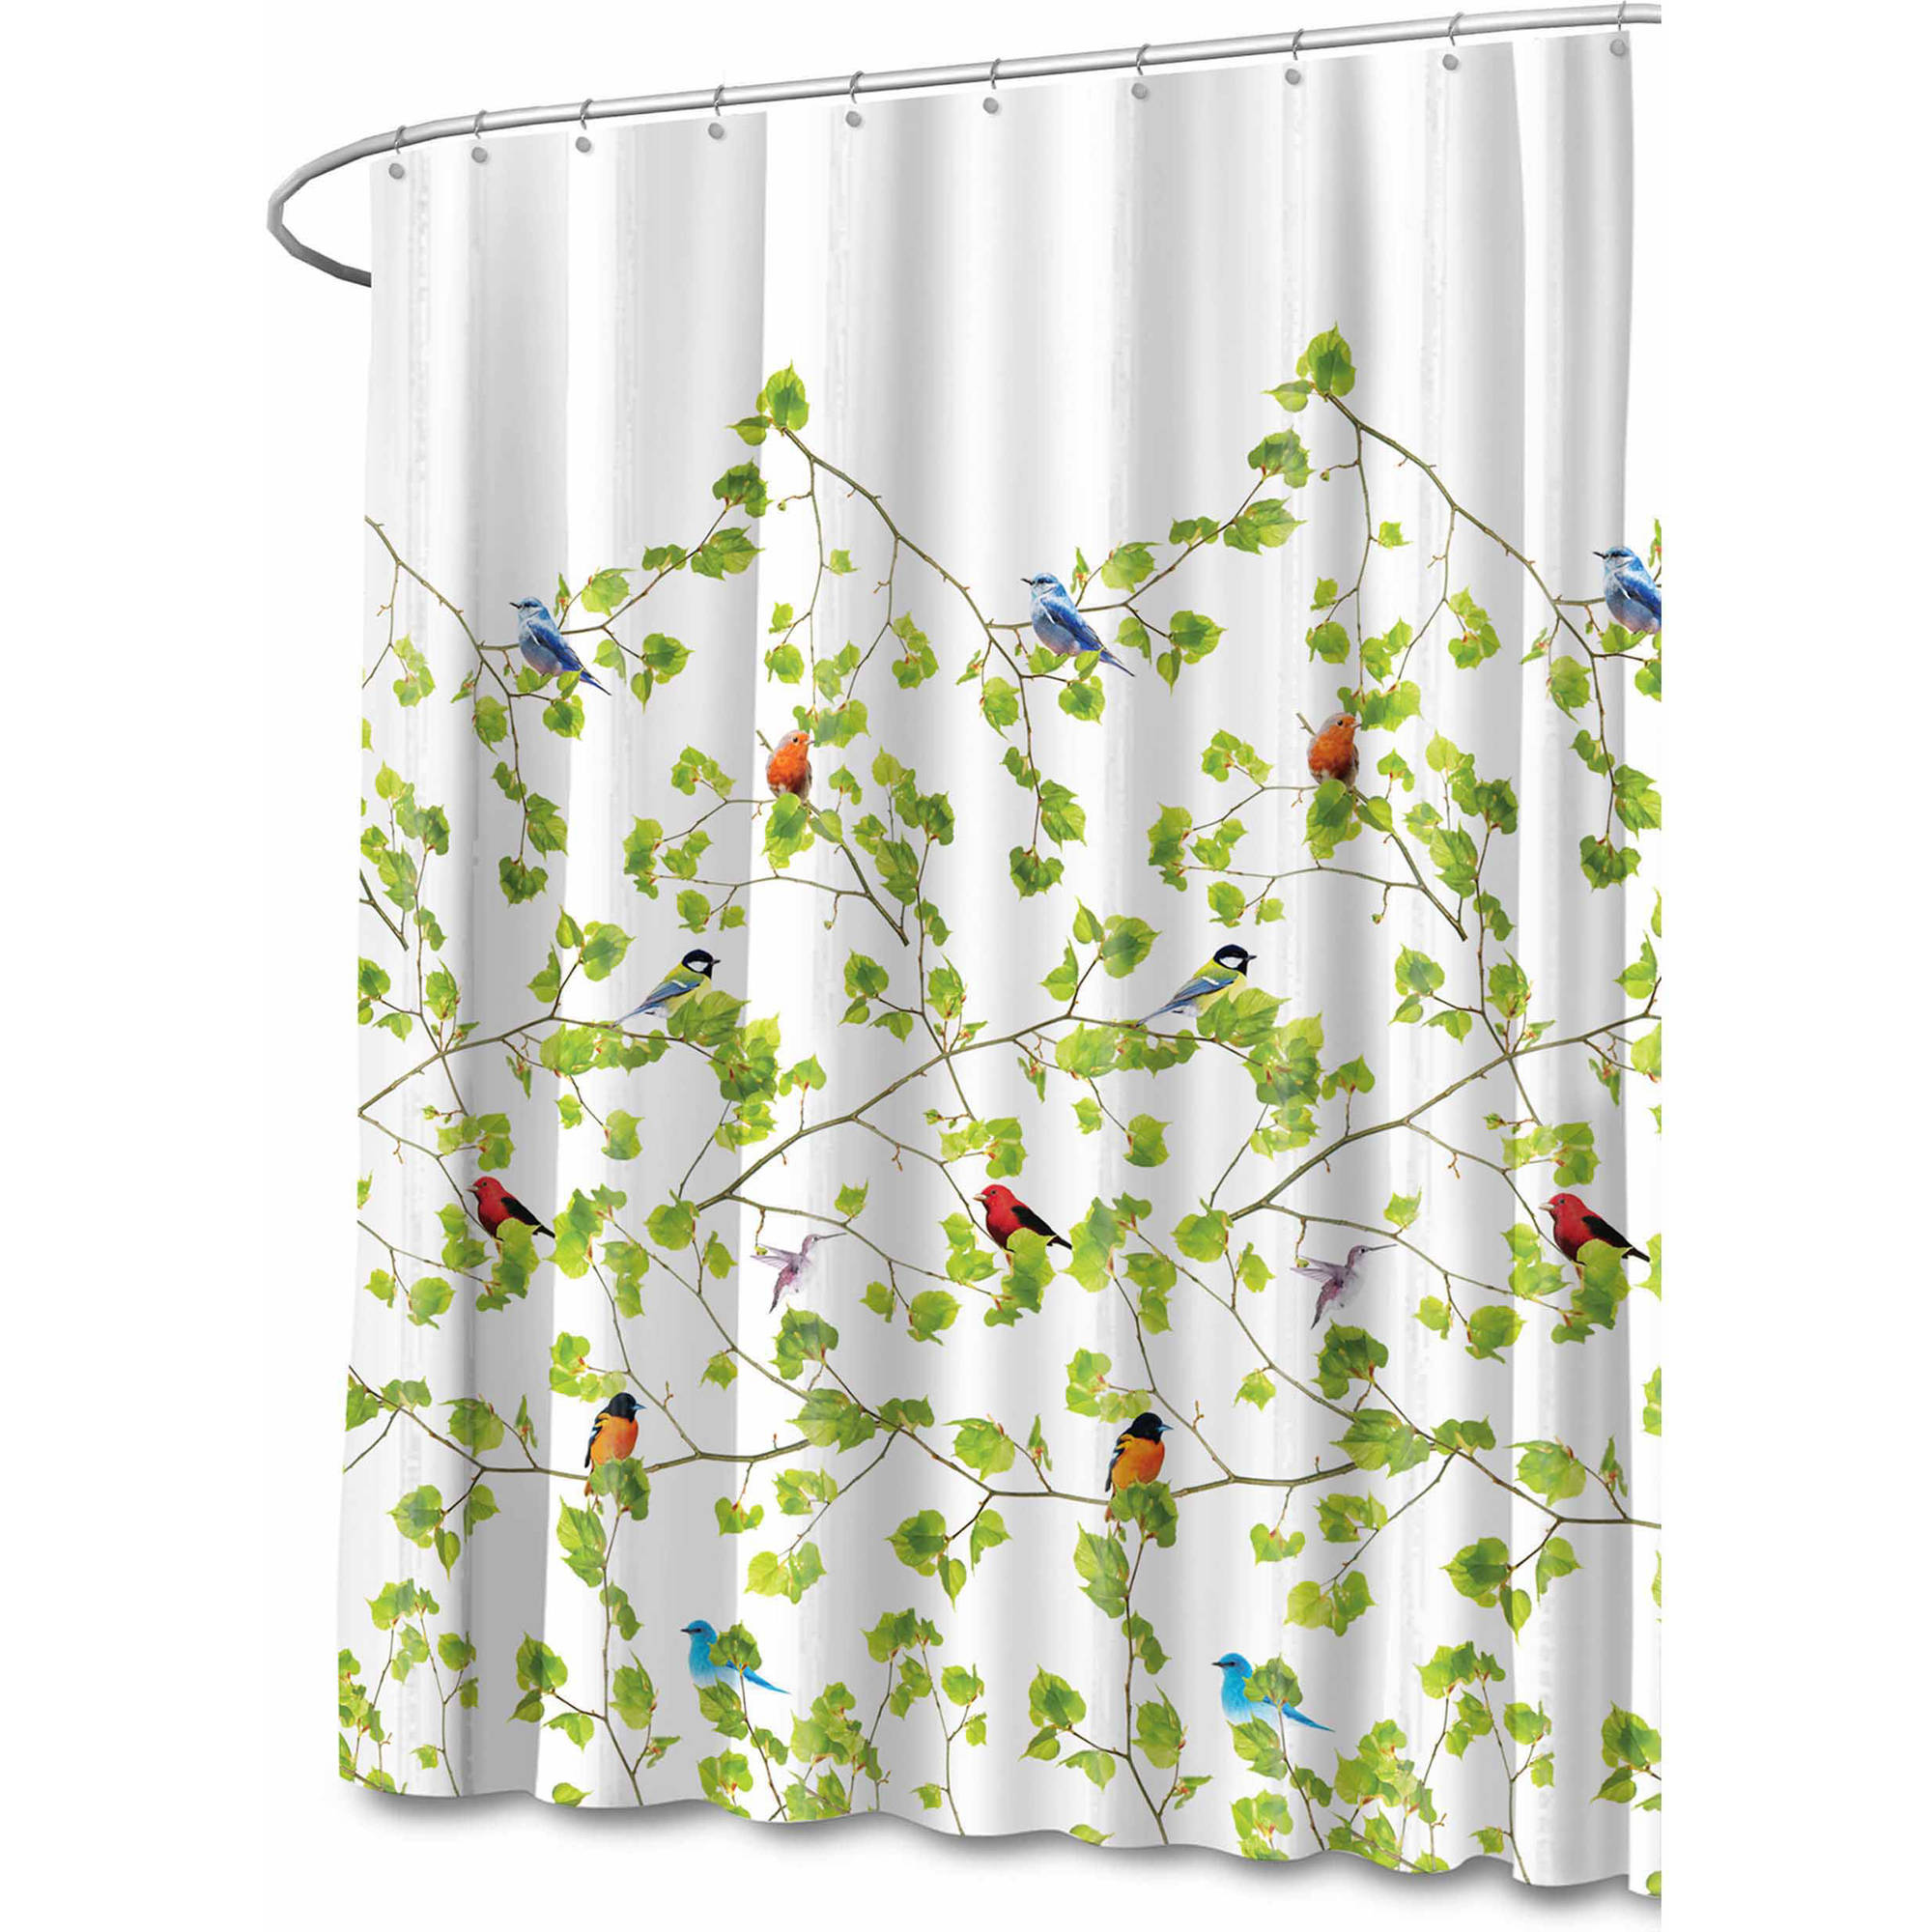 Splash Home Polyester Fabric Shower Curtain by Generic